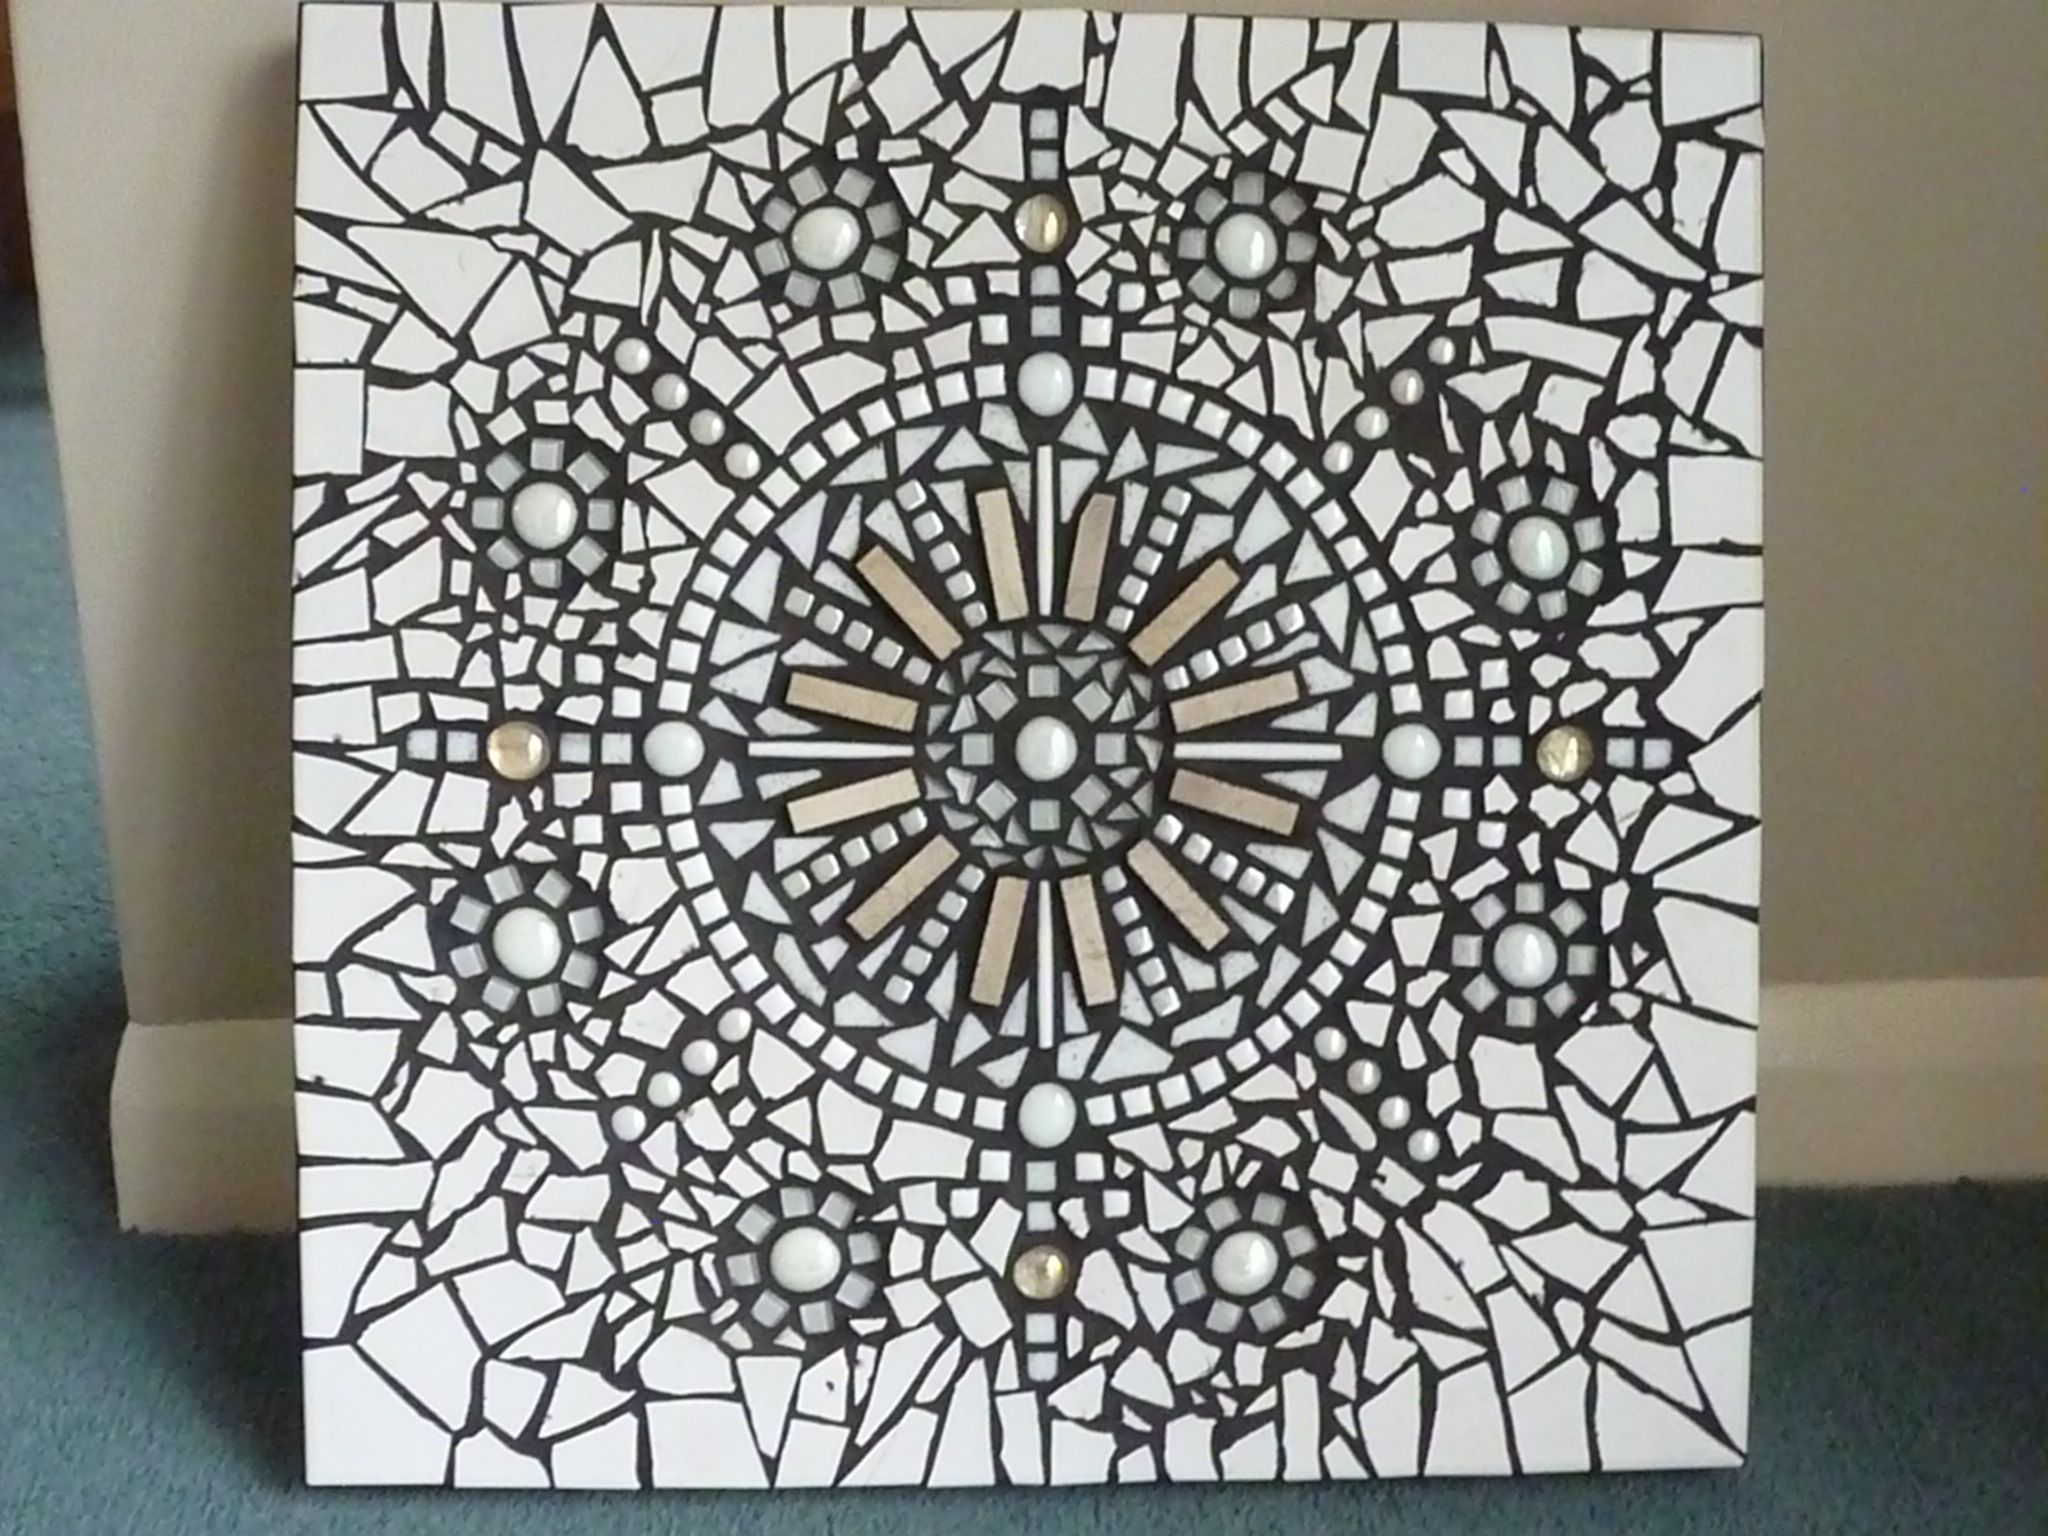 Grout Mosaic Tile White Tiles Glass Beads With Black Grout Black And White